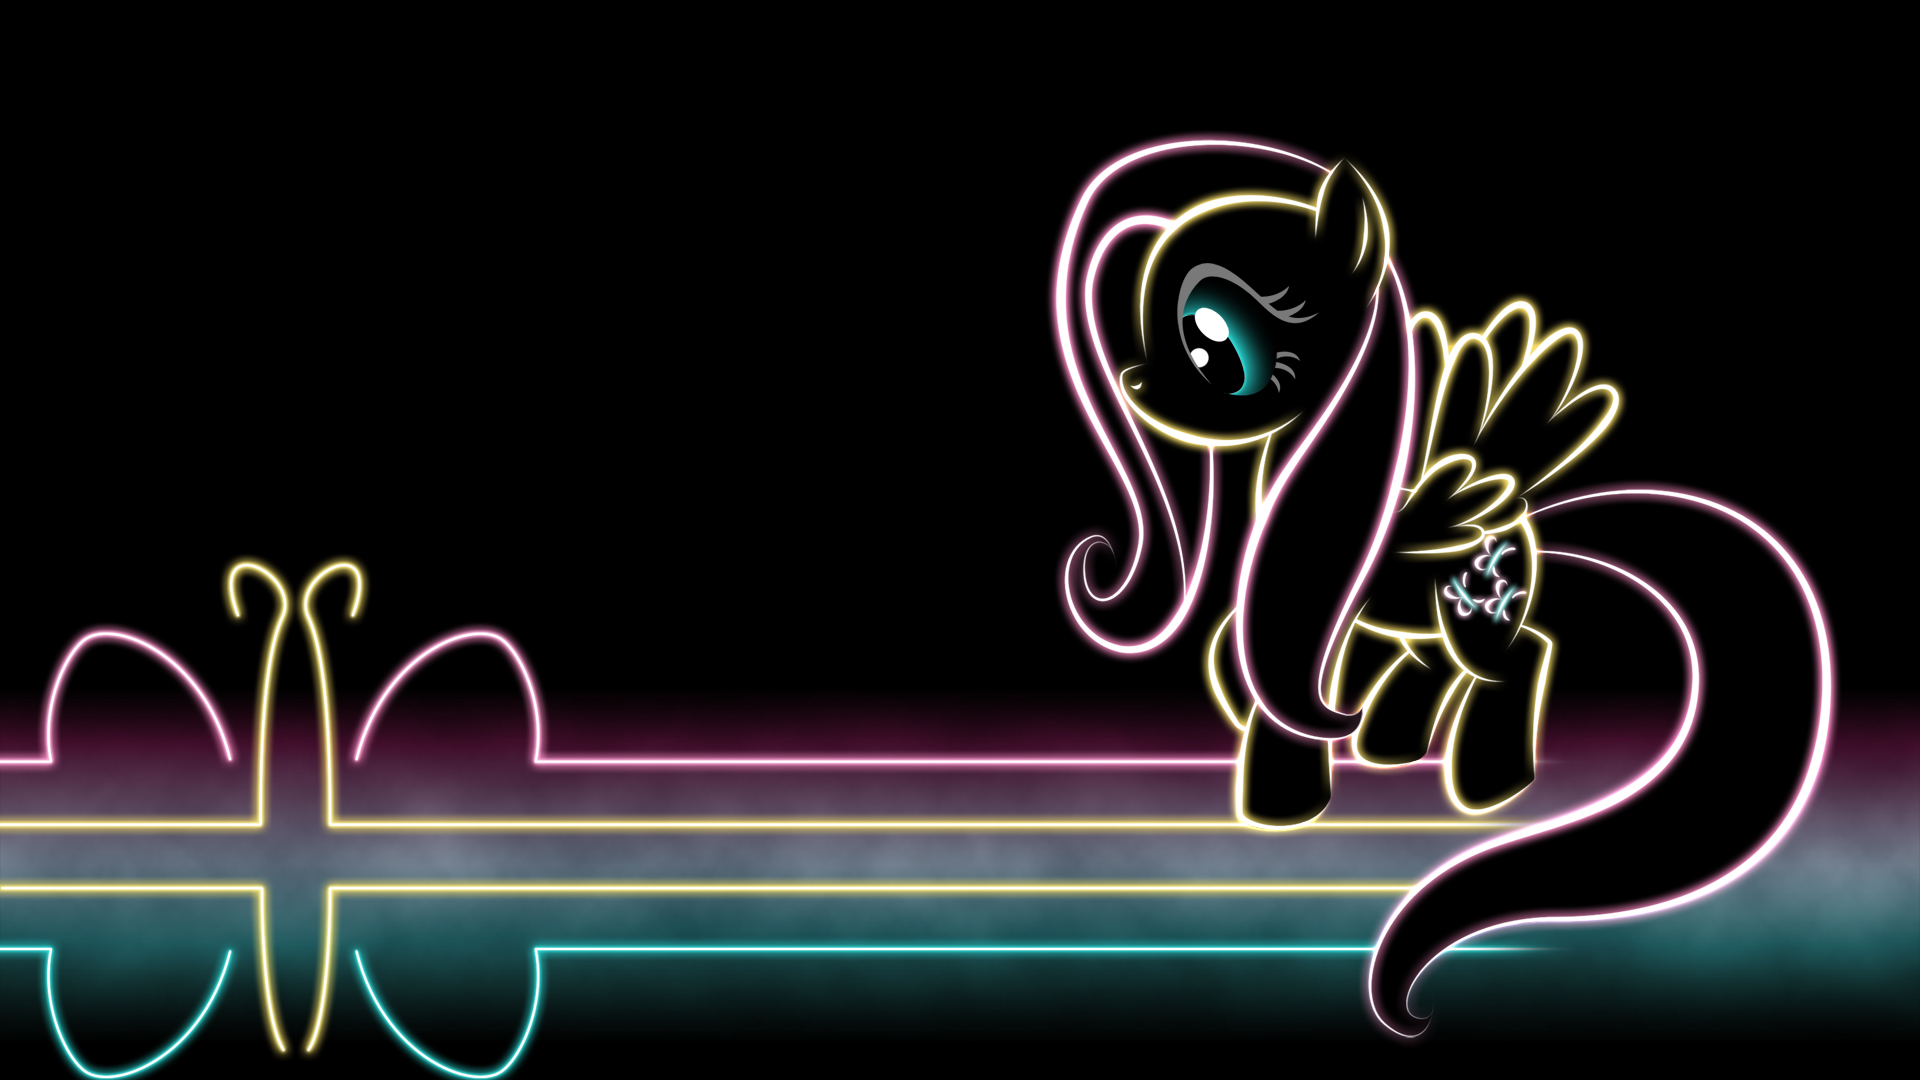 Muchos Wallpapers de My Little Pony FIM   Taringa 1920x1080